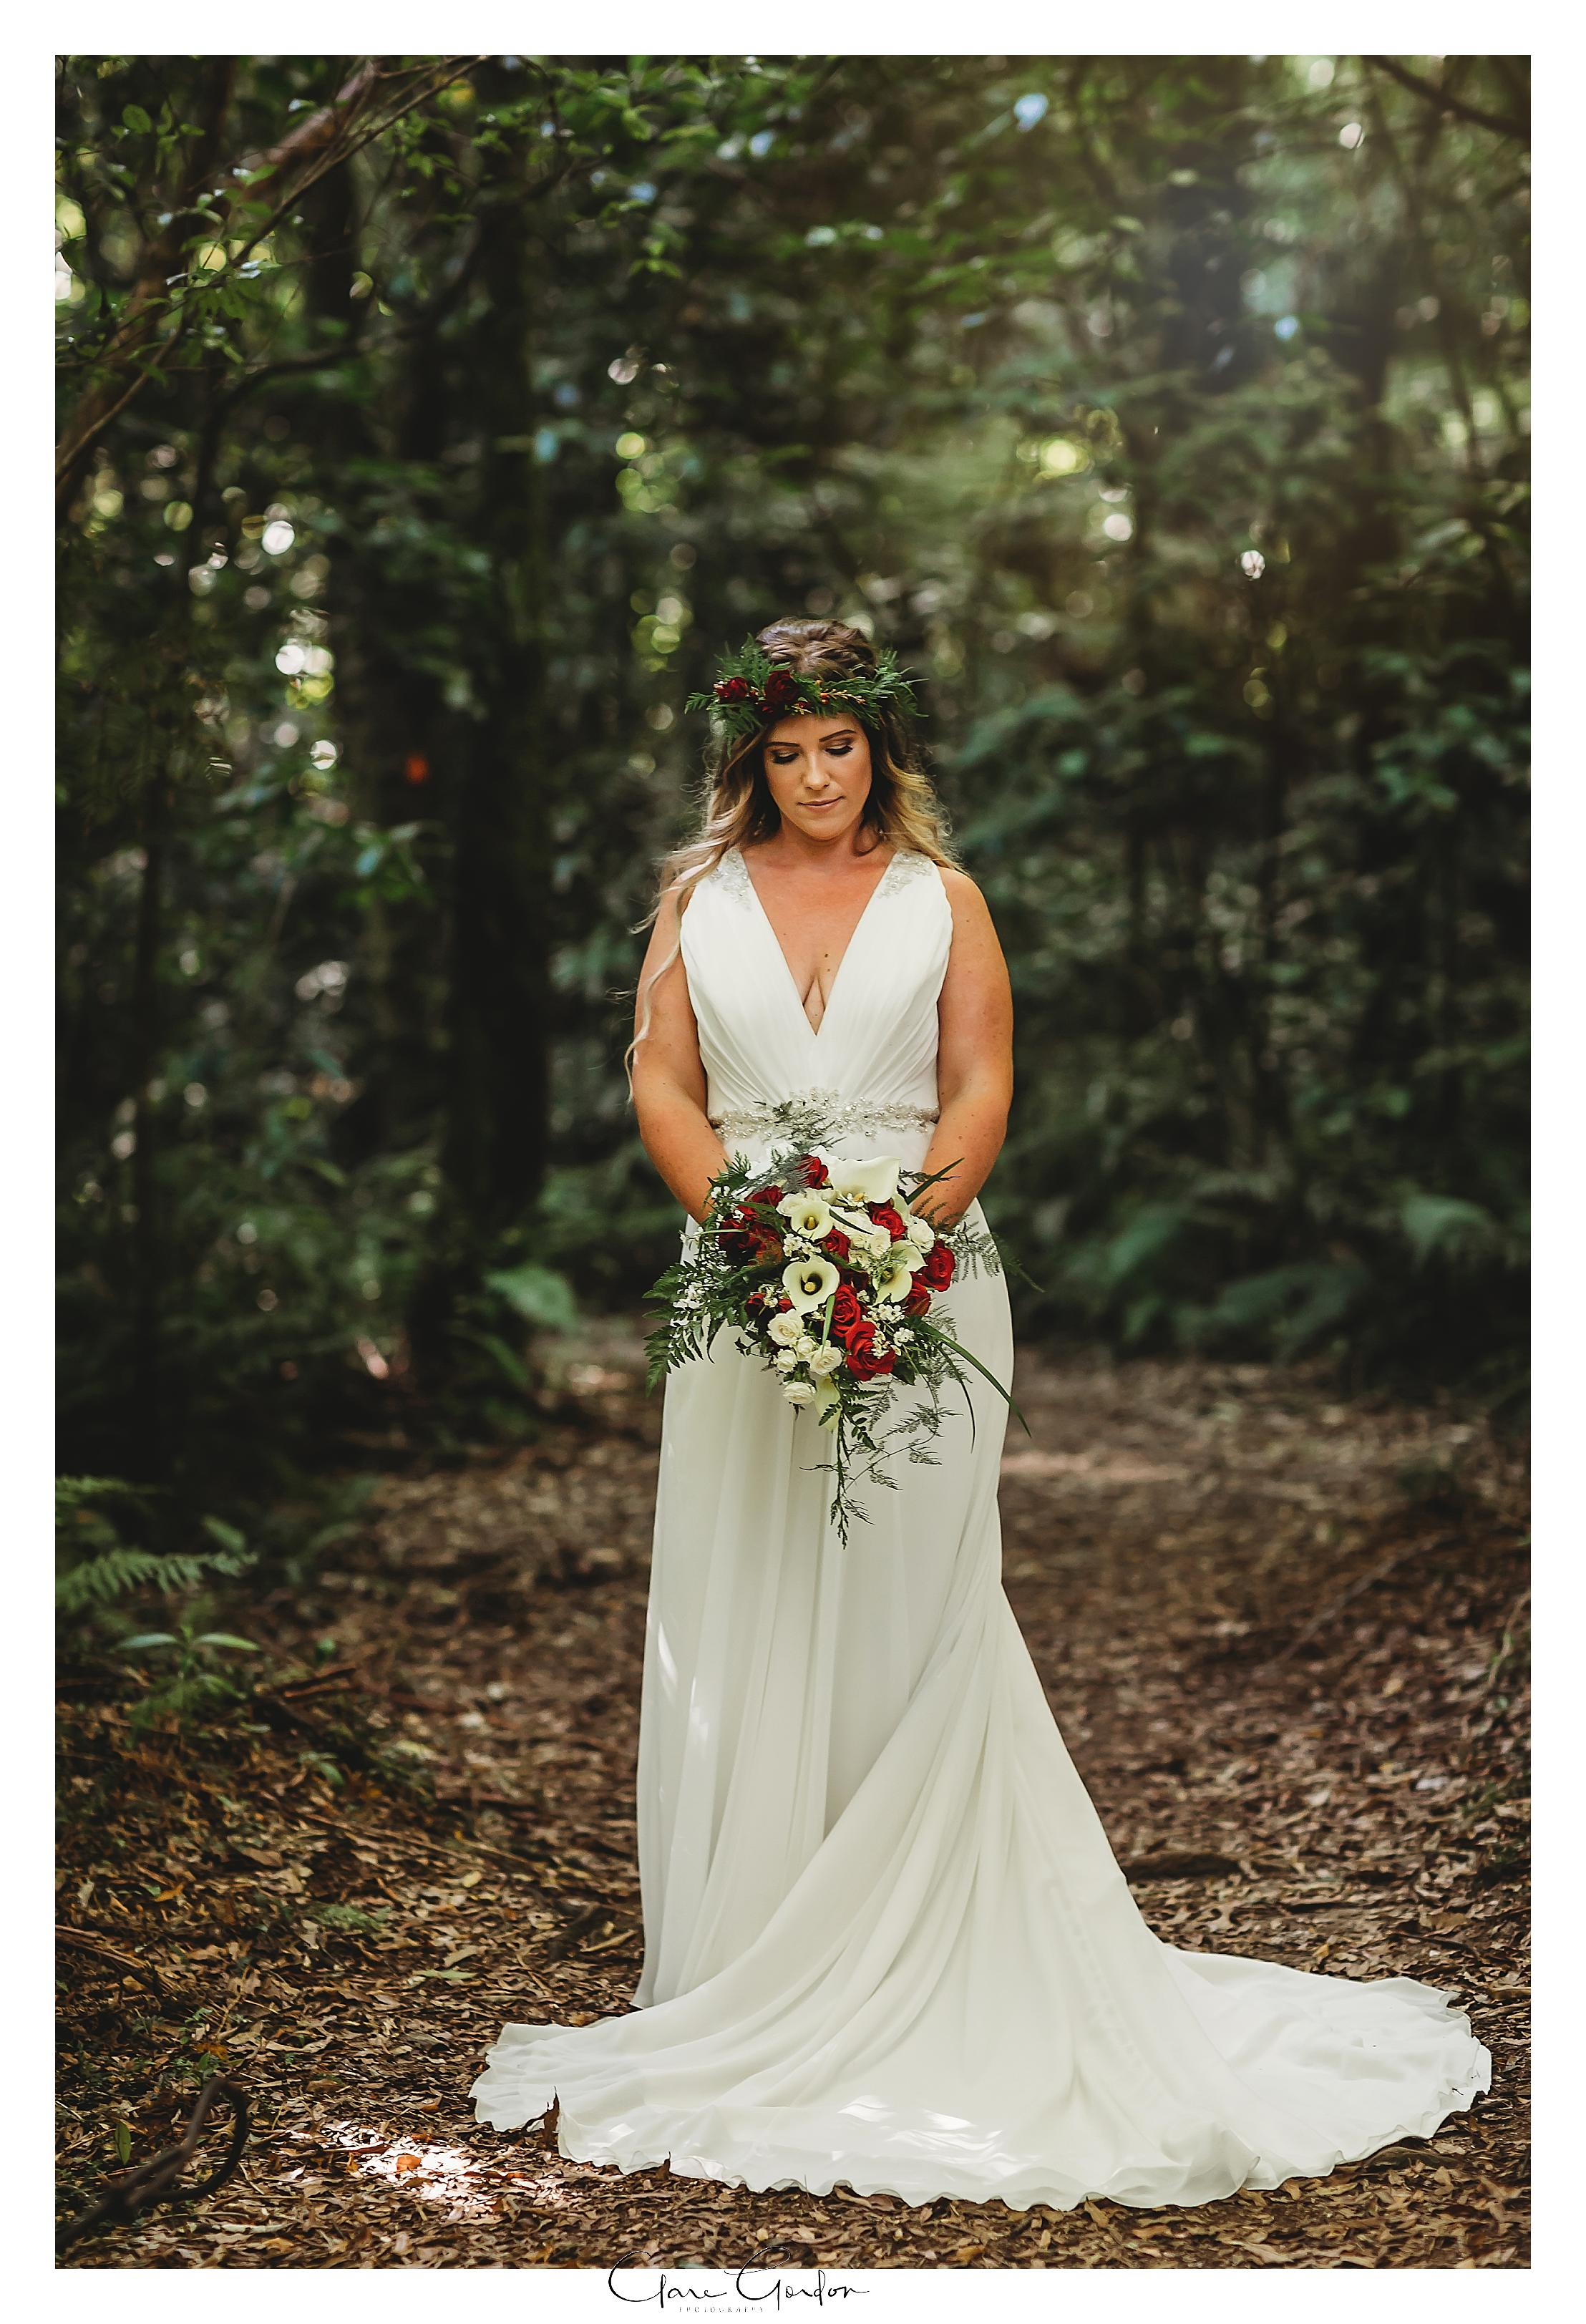 Tauranga-wedding-Photographer-Bride-portrait-in-NZ-Forest.jpg